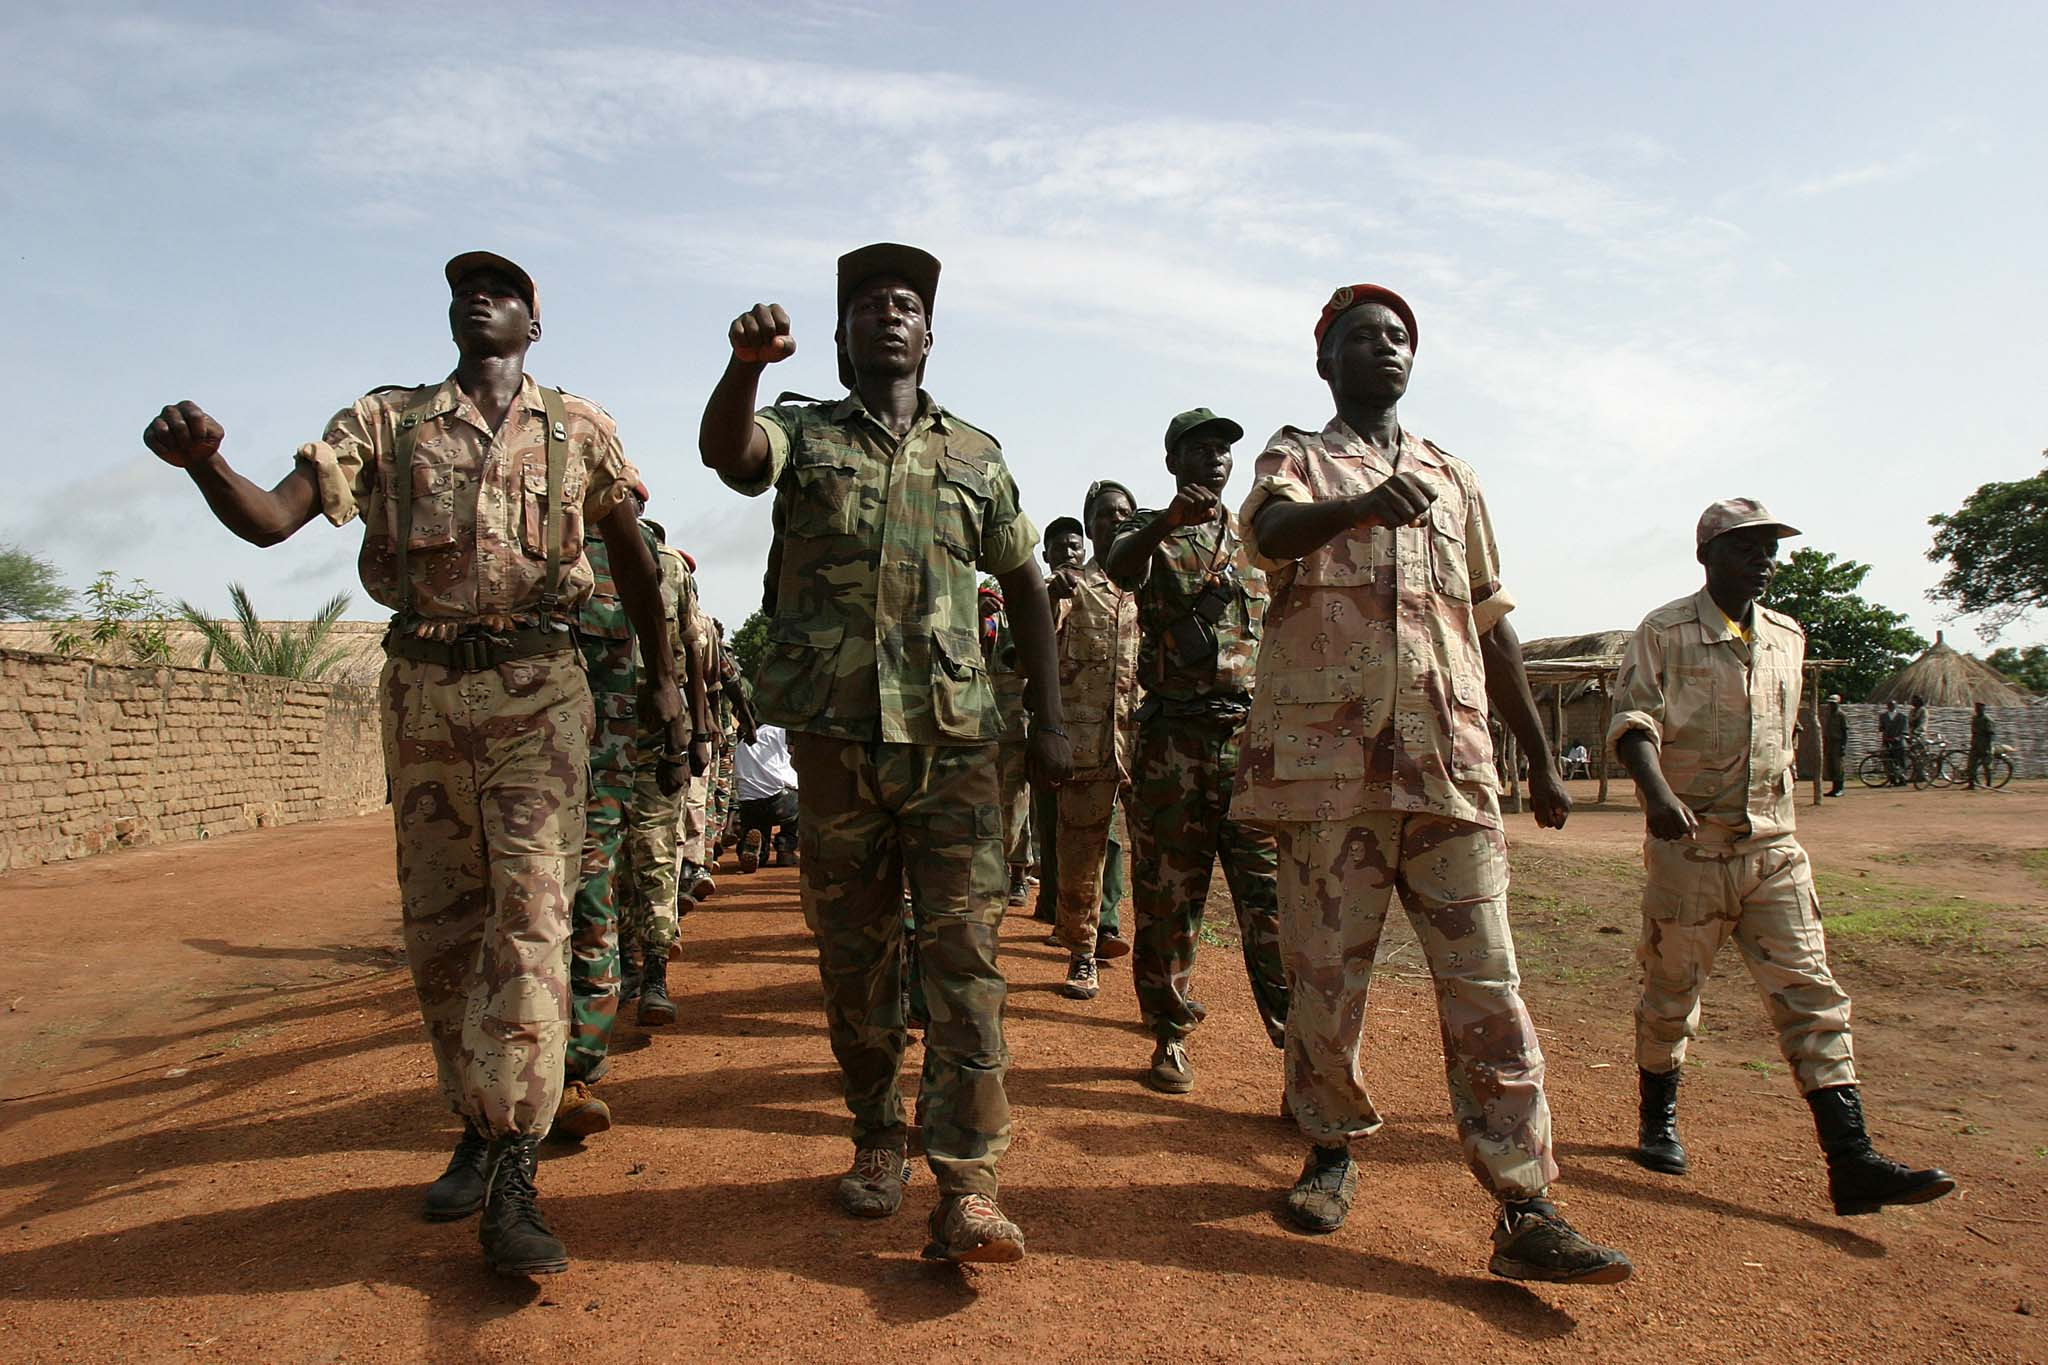 Somalia security forces end militant attack on hotel that killed 13 - police officer